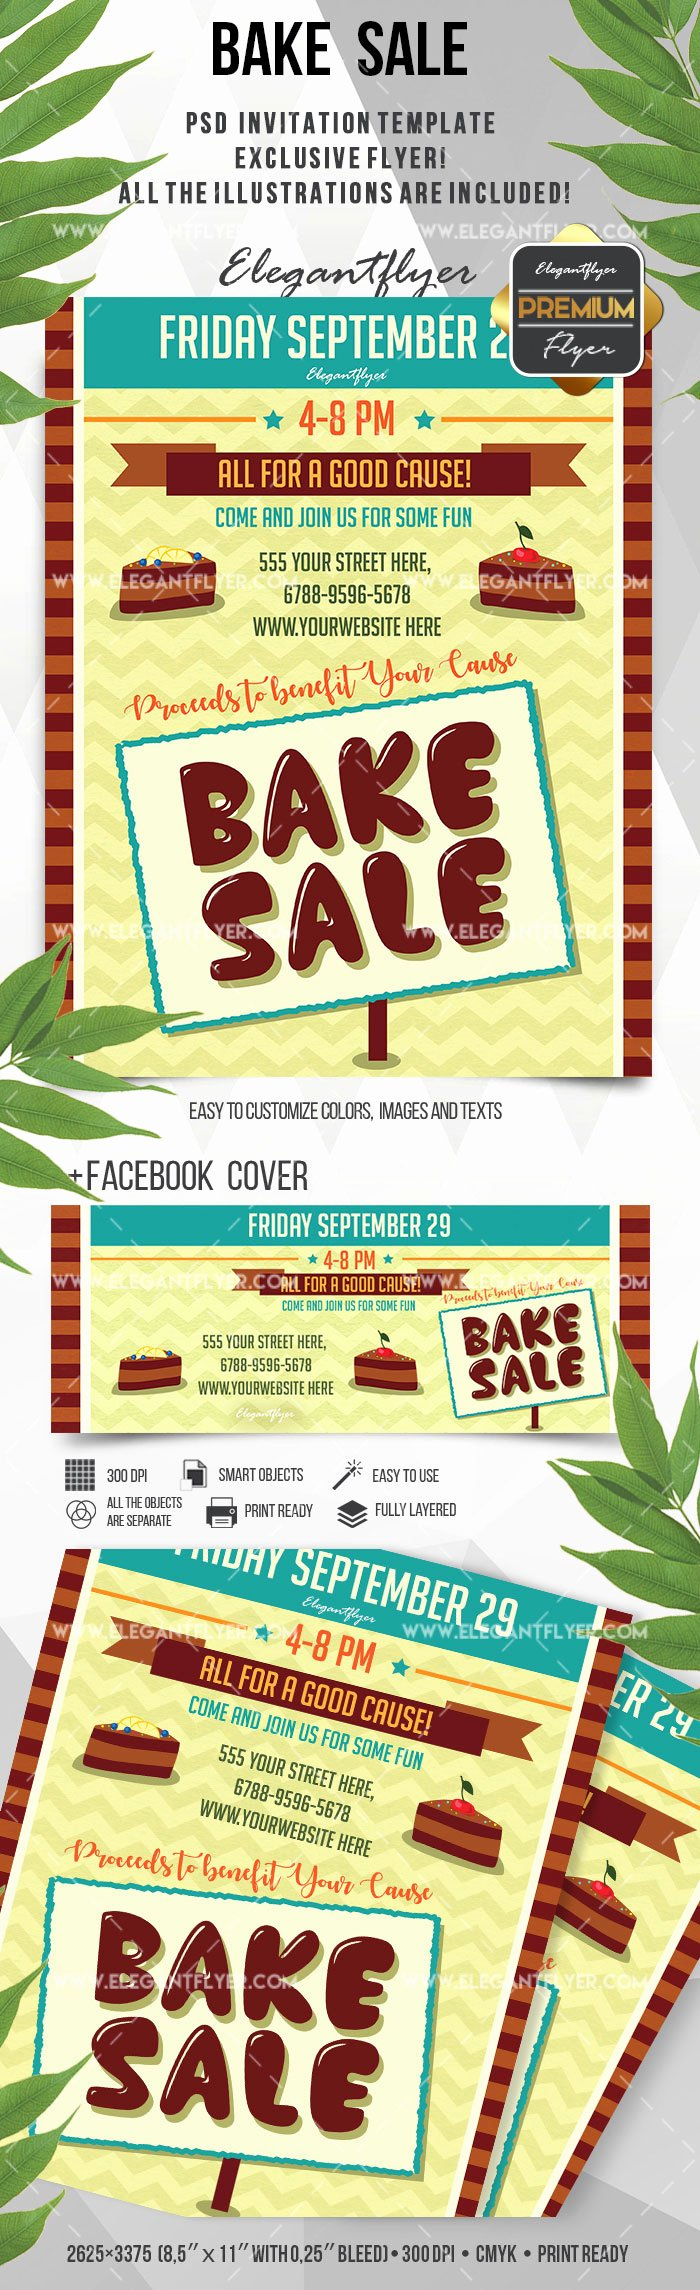 Bake Sale Flyer Template Luxury Flyer for Bake Sale Bakery – by Elegantflyer